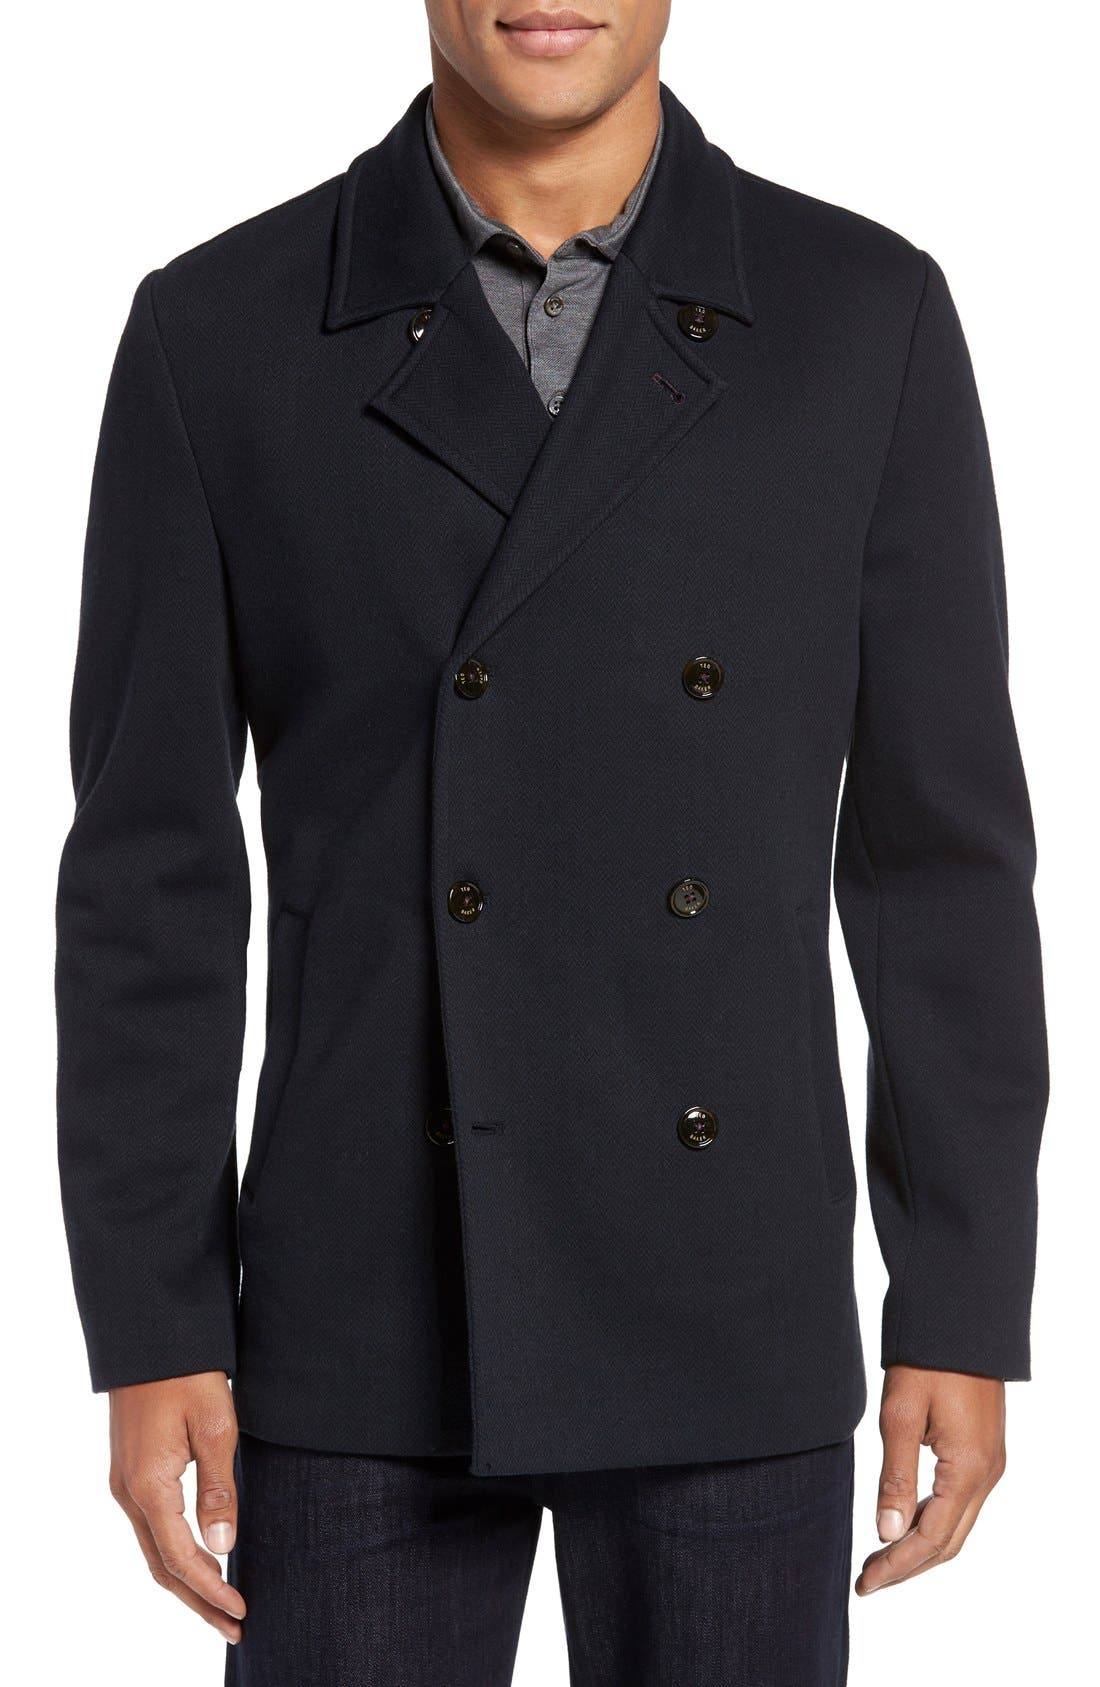 Ted Baker London 'Bonde' Modern Trim Fit Double Breasted Jacket